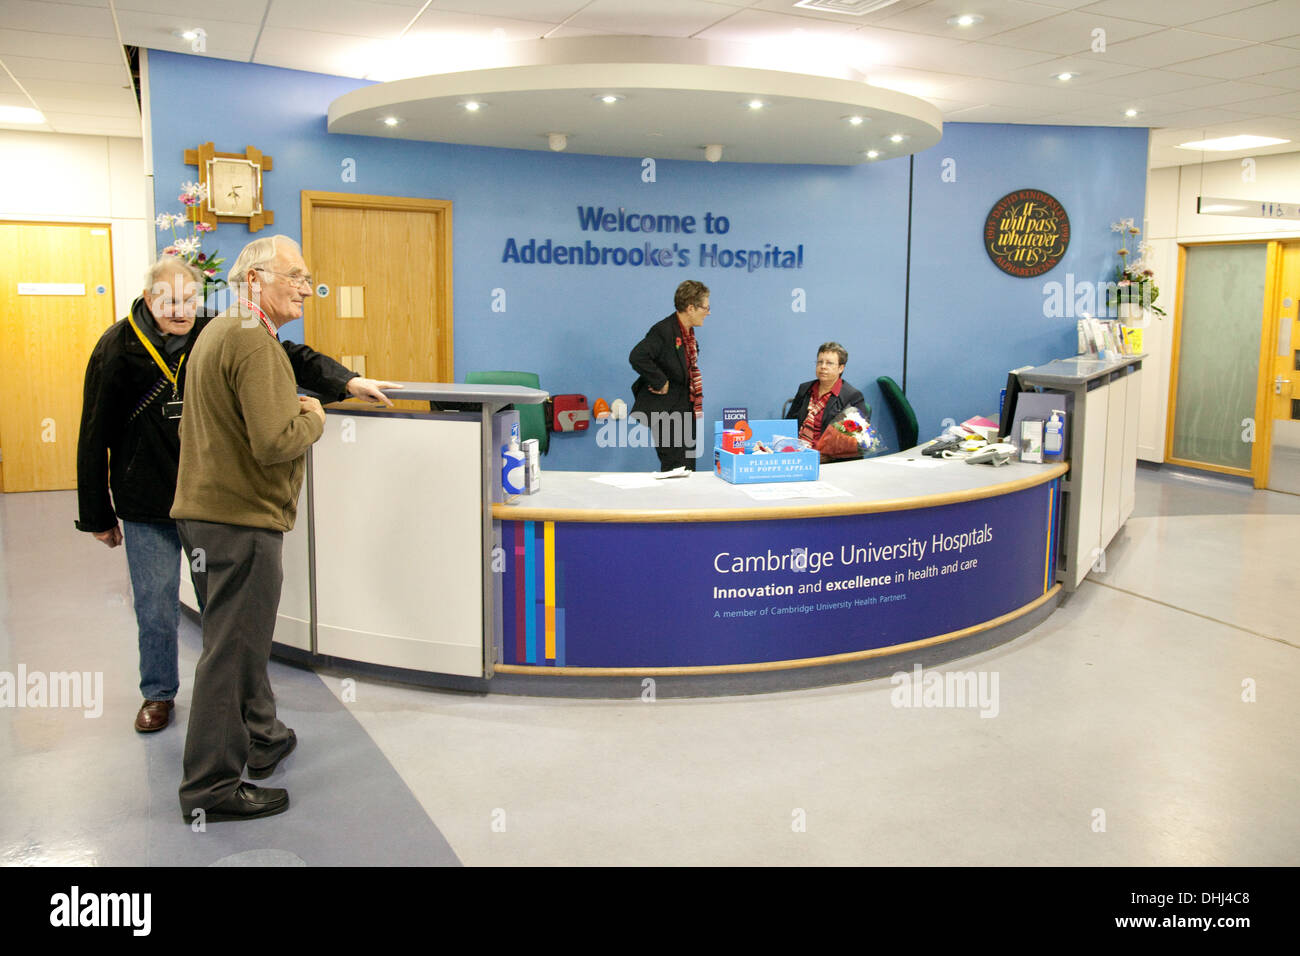 Addenbrookes NHS Hospital welcome information desk at the entrance, Cambridge UK Stock Photo